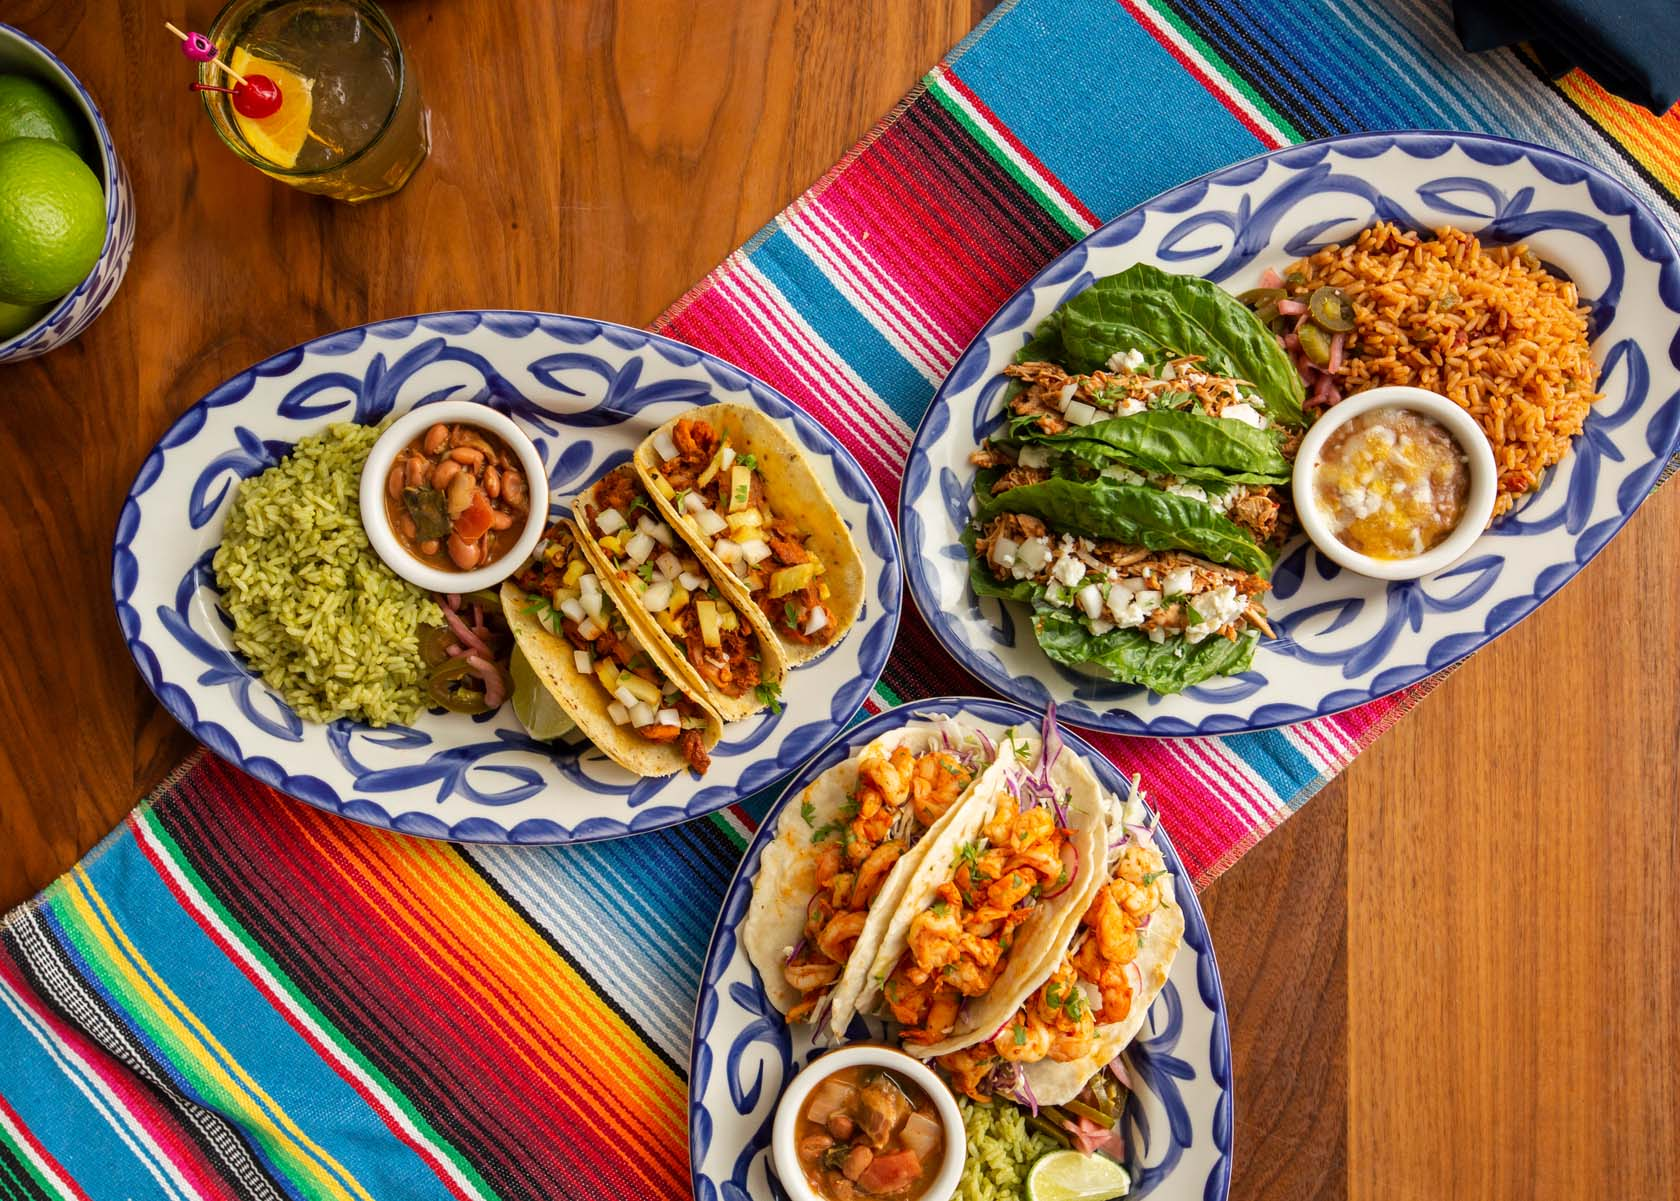 Array of plated entrees featuring tacos made with corn, flour and lettuce tortillas, plated with cilantro rice, Mexican rice and bean side dishes.